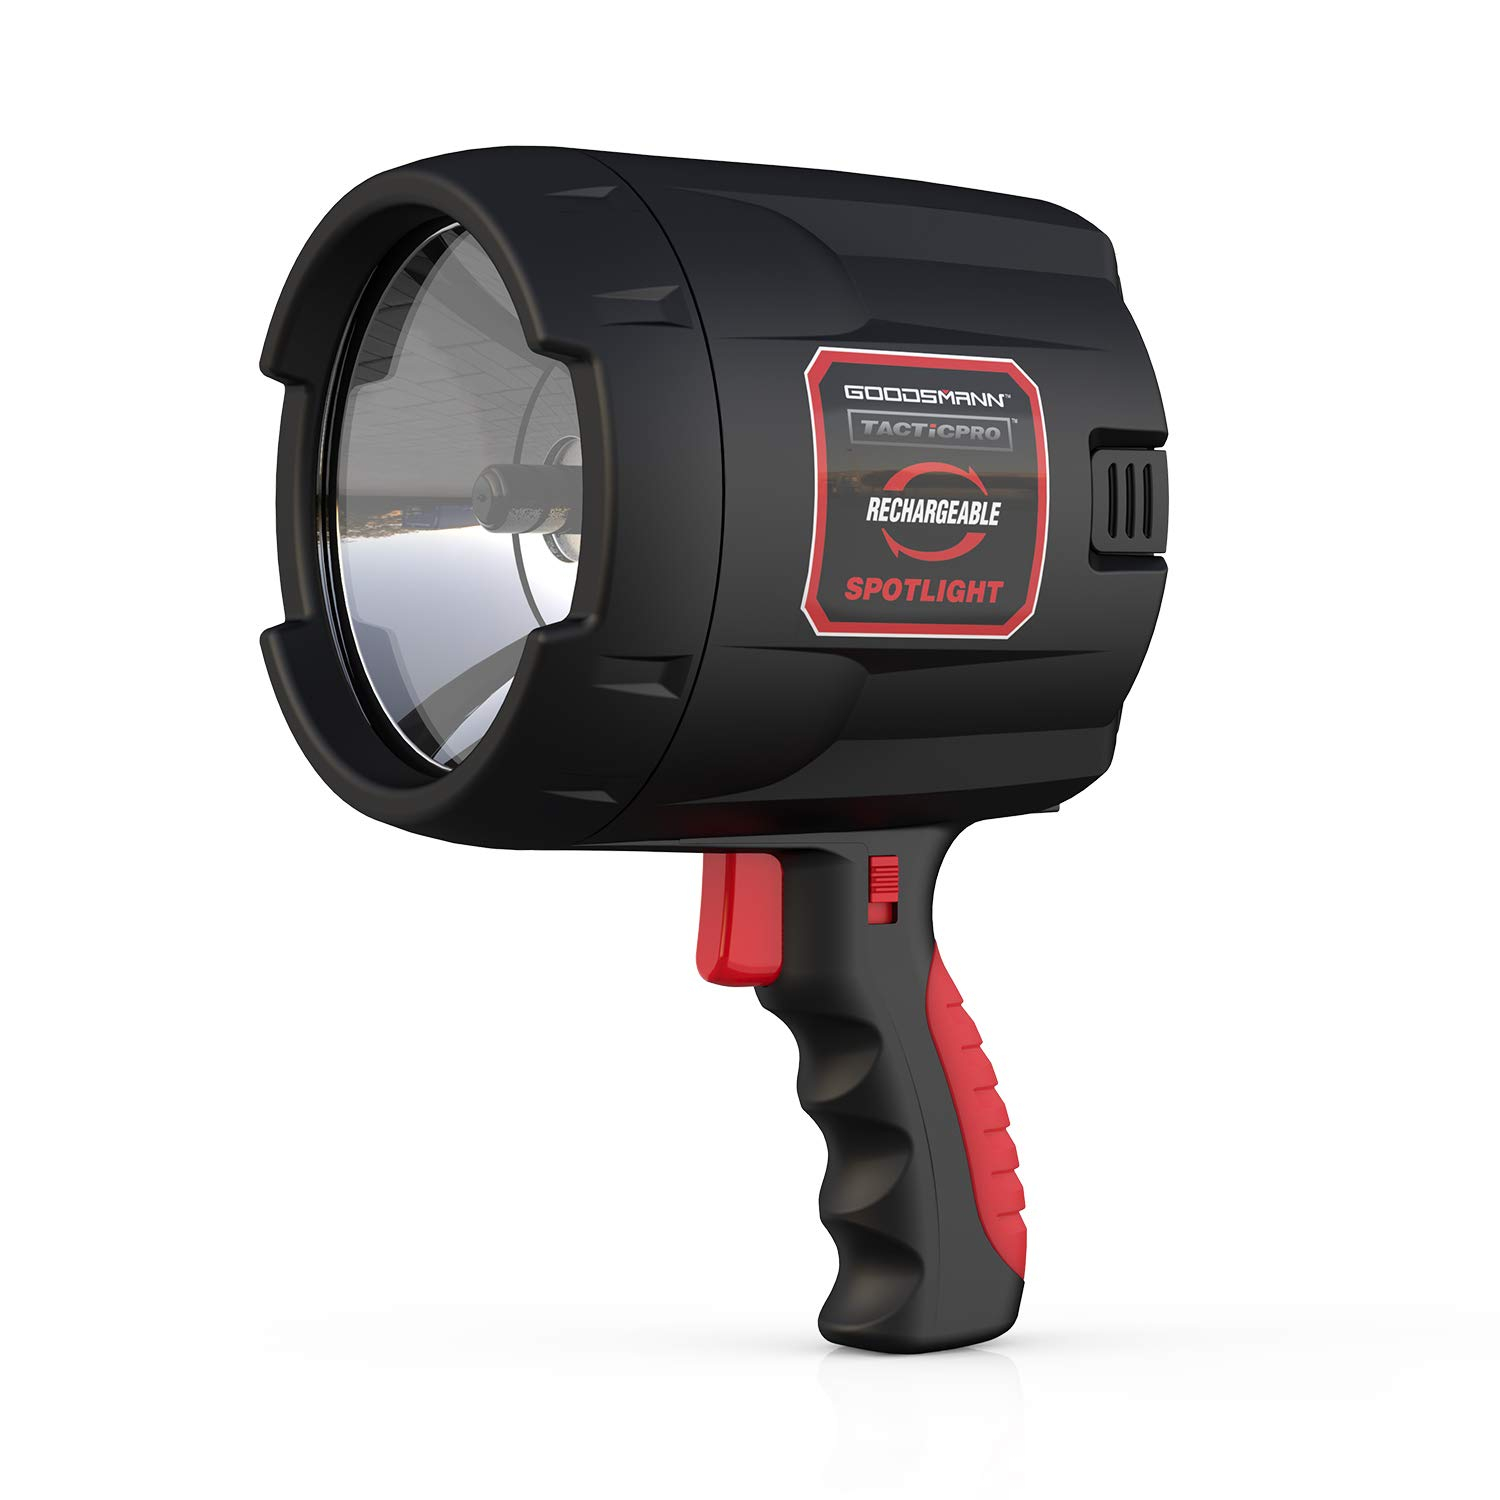 GOODSMANN Max Million Tacticpro Bright Portable Cordless Rechargeable Halogen Flood/Spotlight Offroad Automotive/Garage/Emergency/Boating/Fishing/Hunting/Camping/Hiking/Patrolling 9924-0011-08